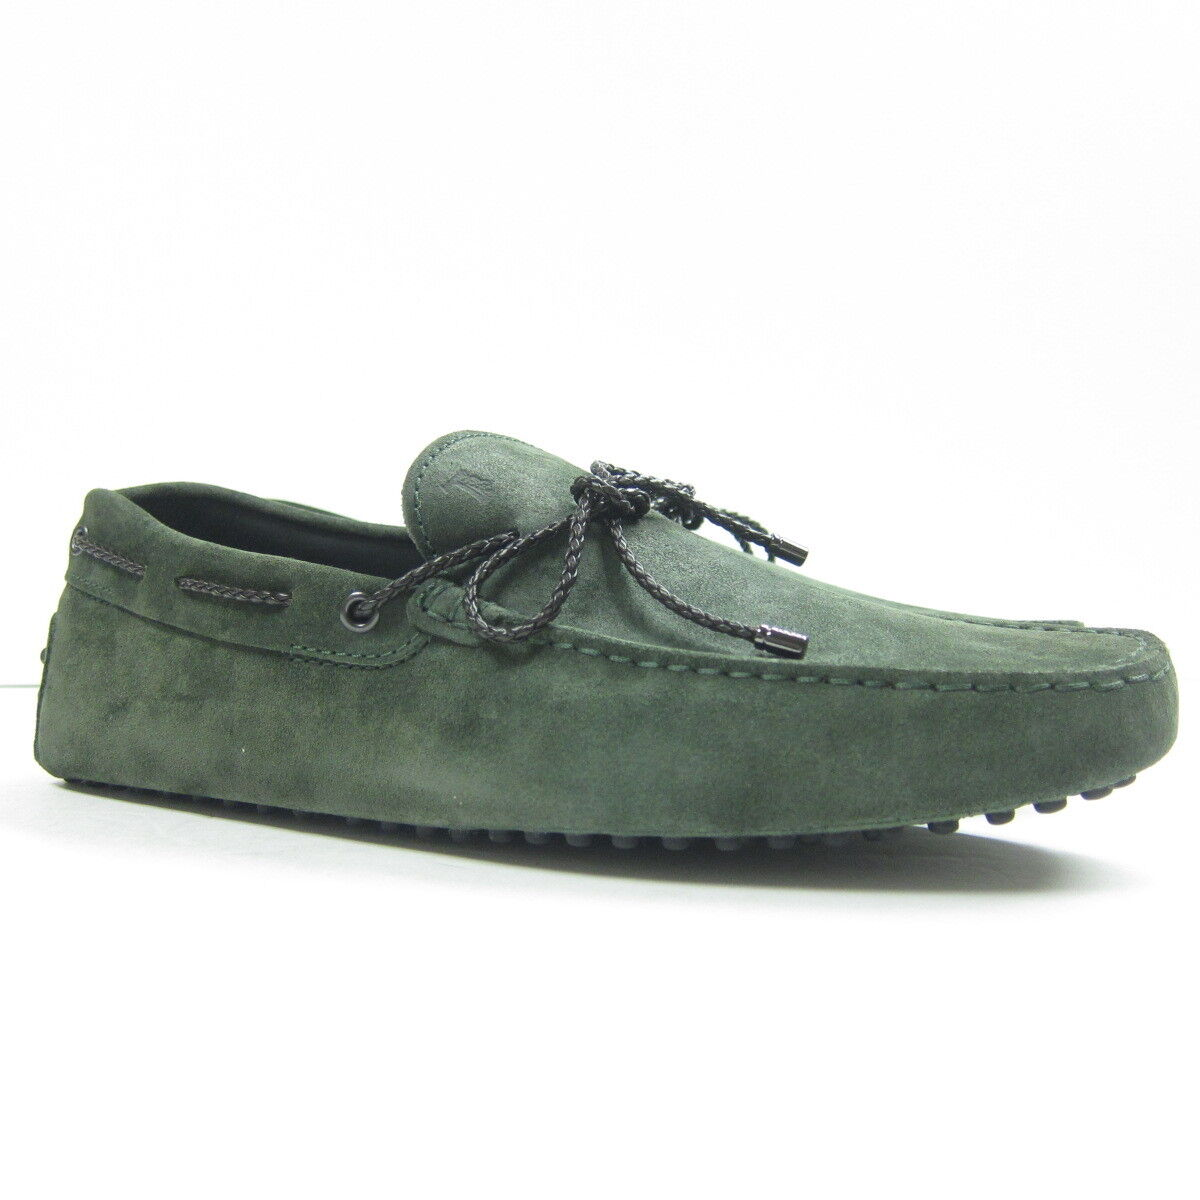 P-381167 New Tods Woven Lace Wood Green Driving shoes Size US 10 UK 9